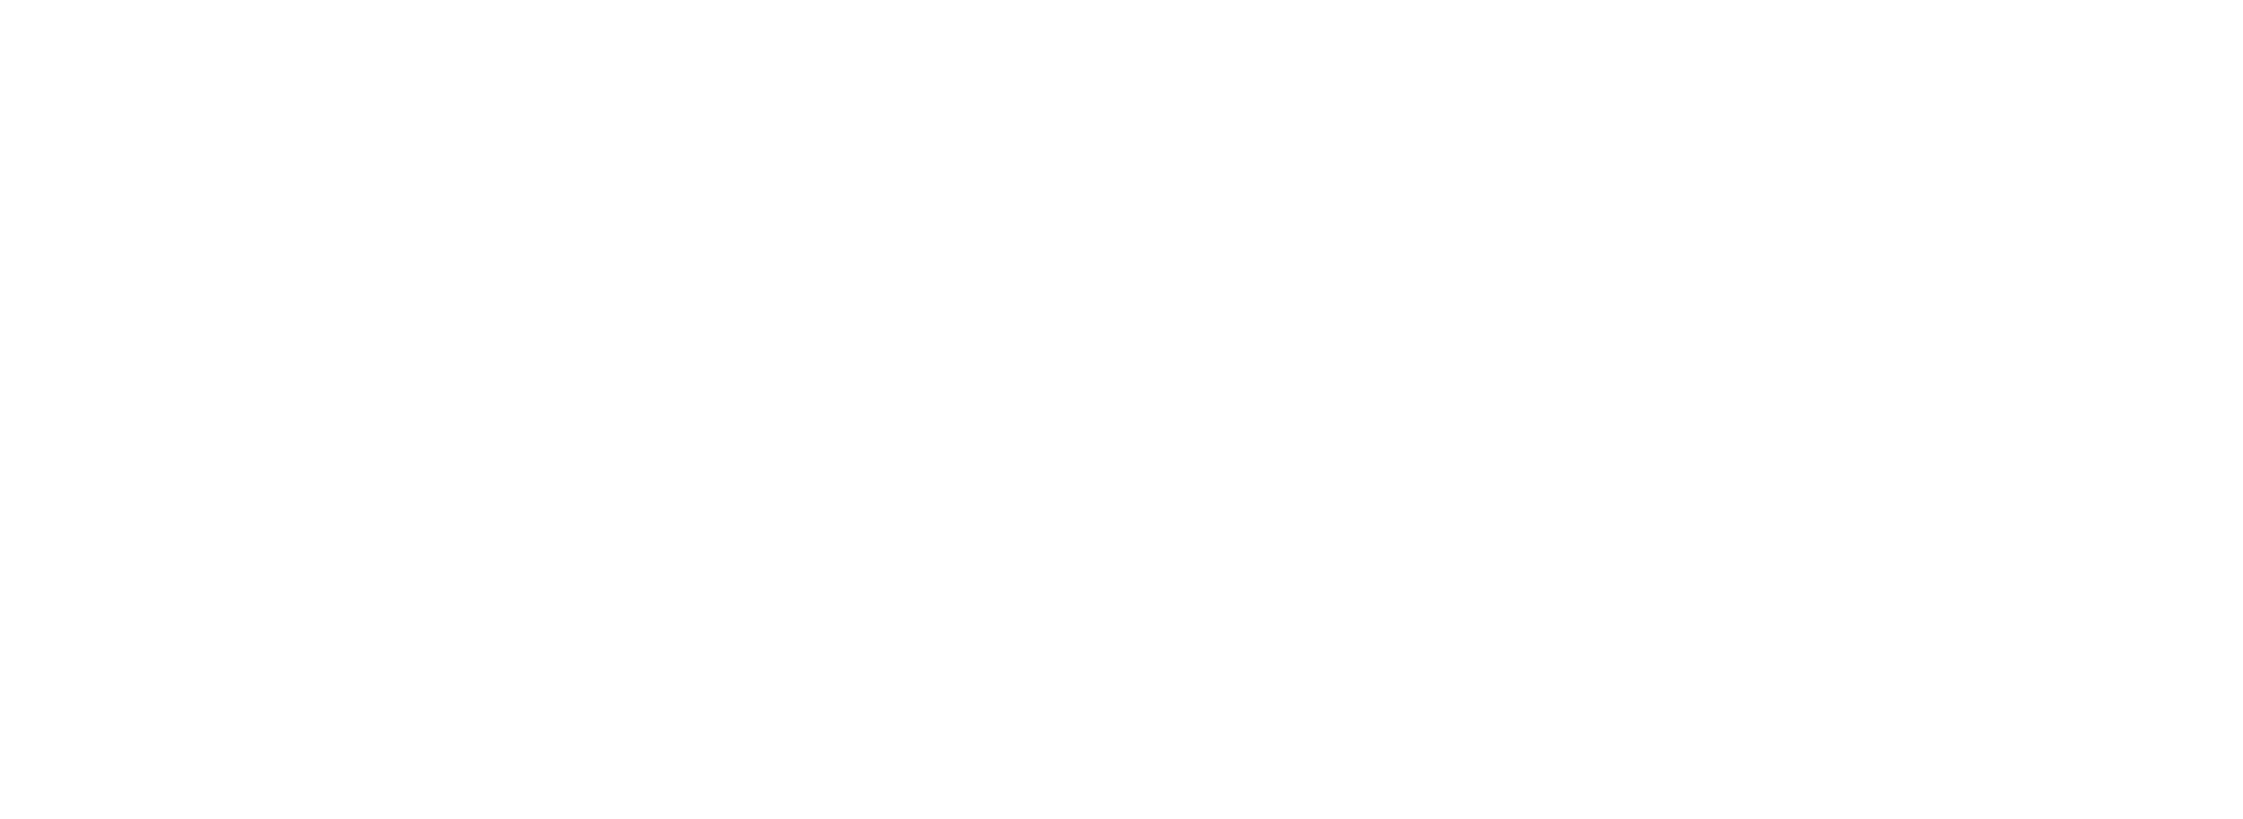 WBGO logo